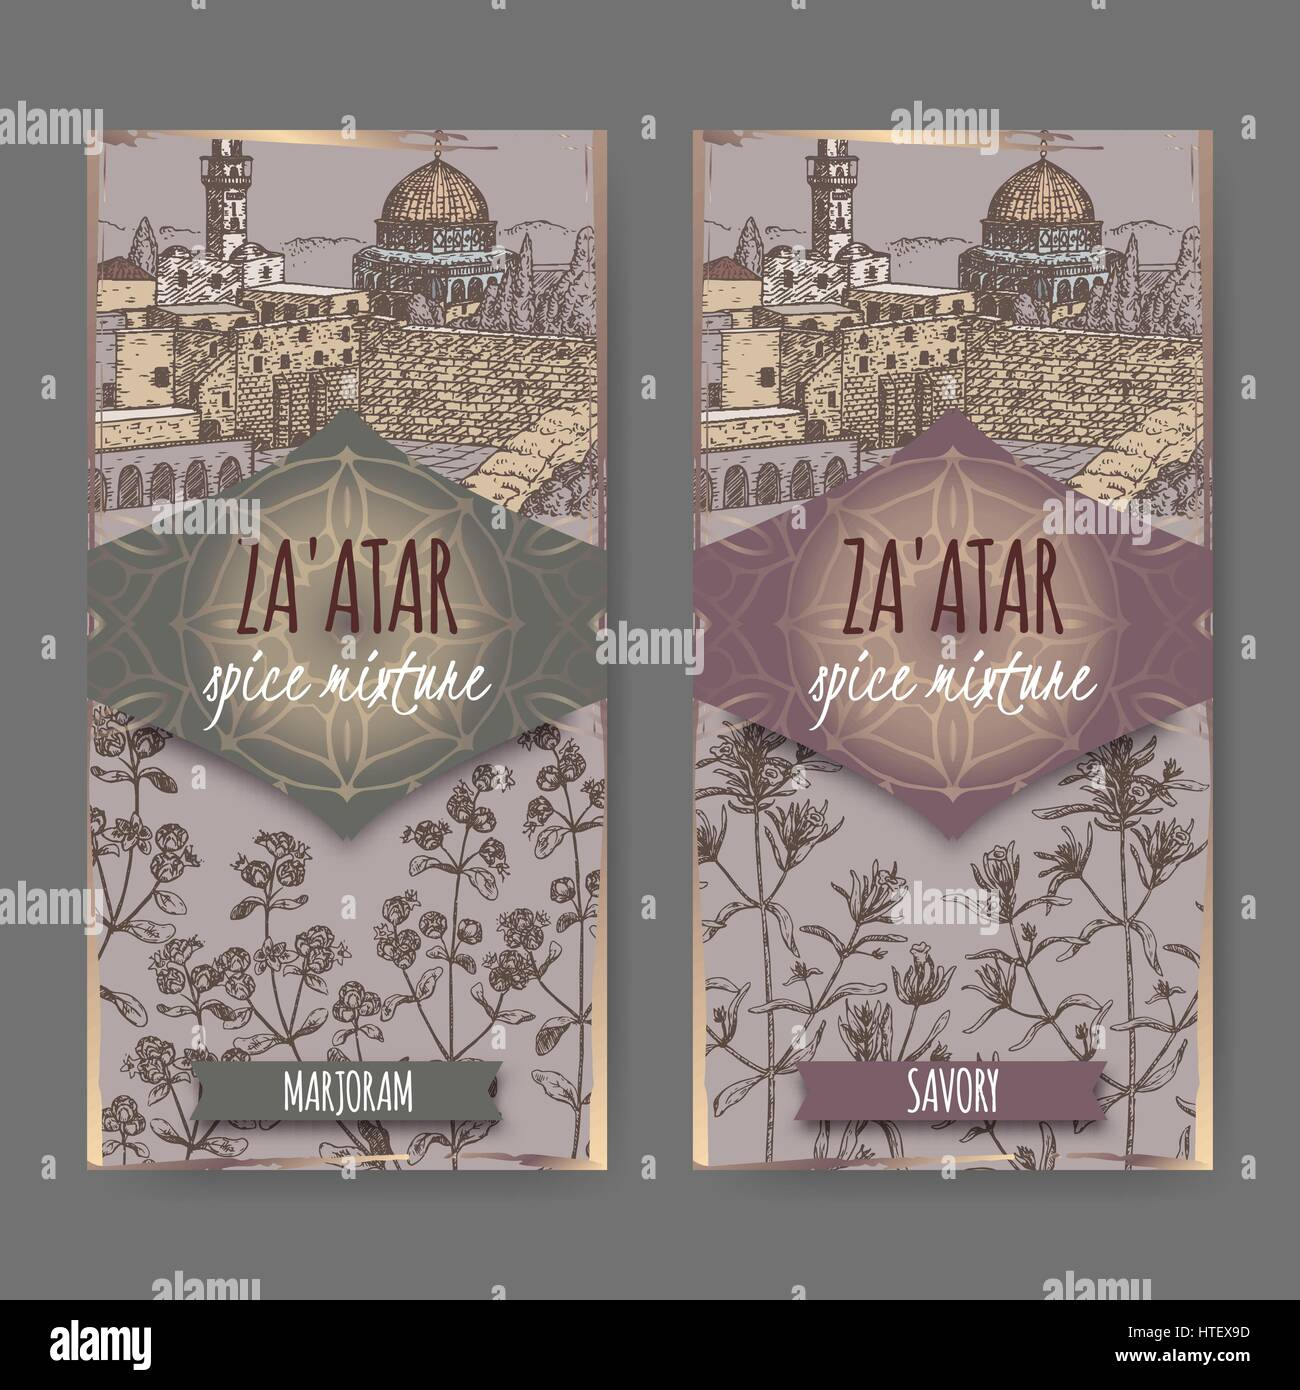 Two Zaatar spice mixture labels with Jerusalem town